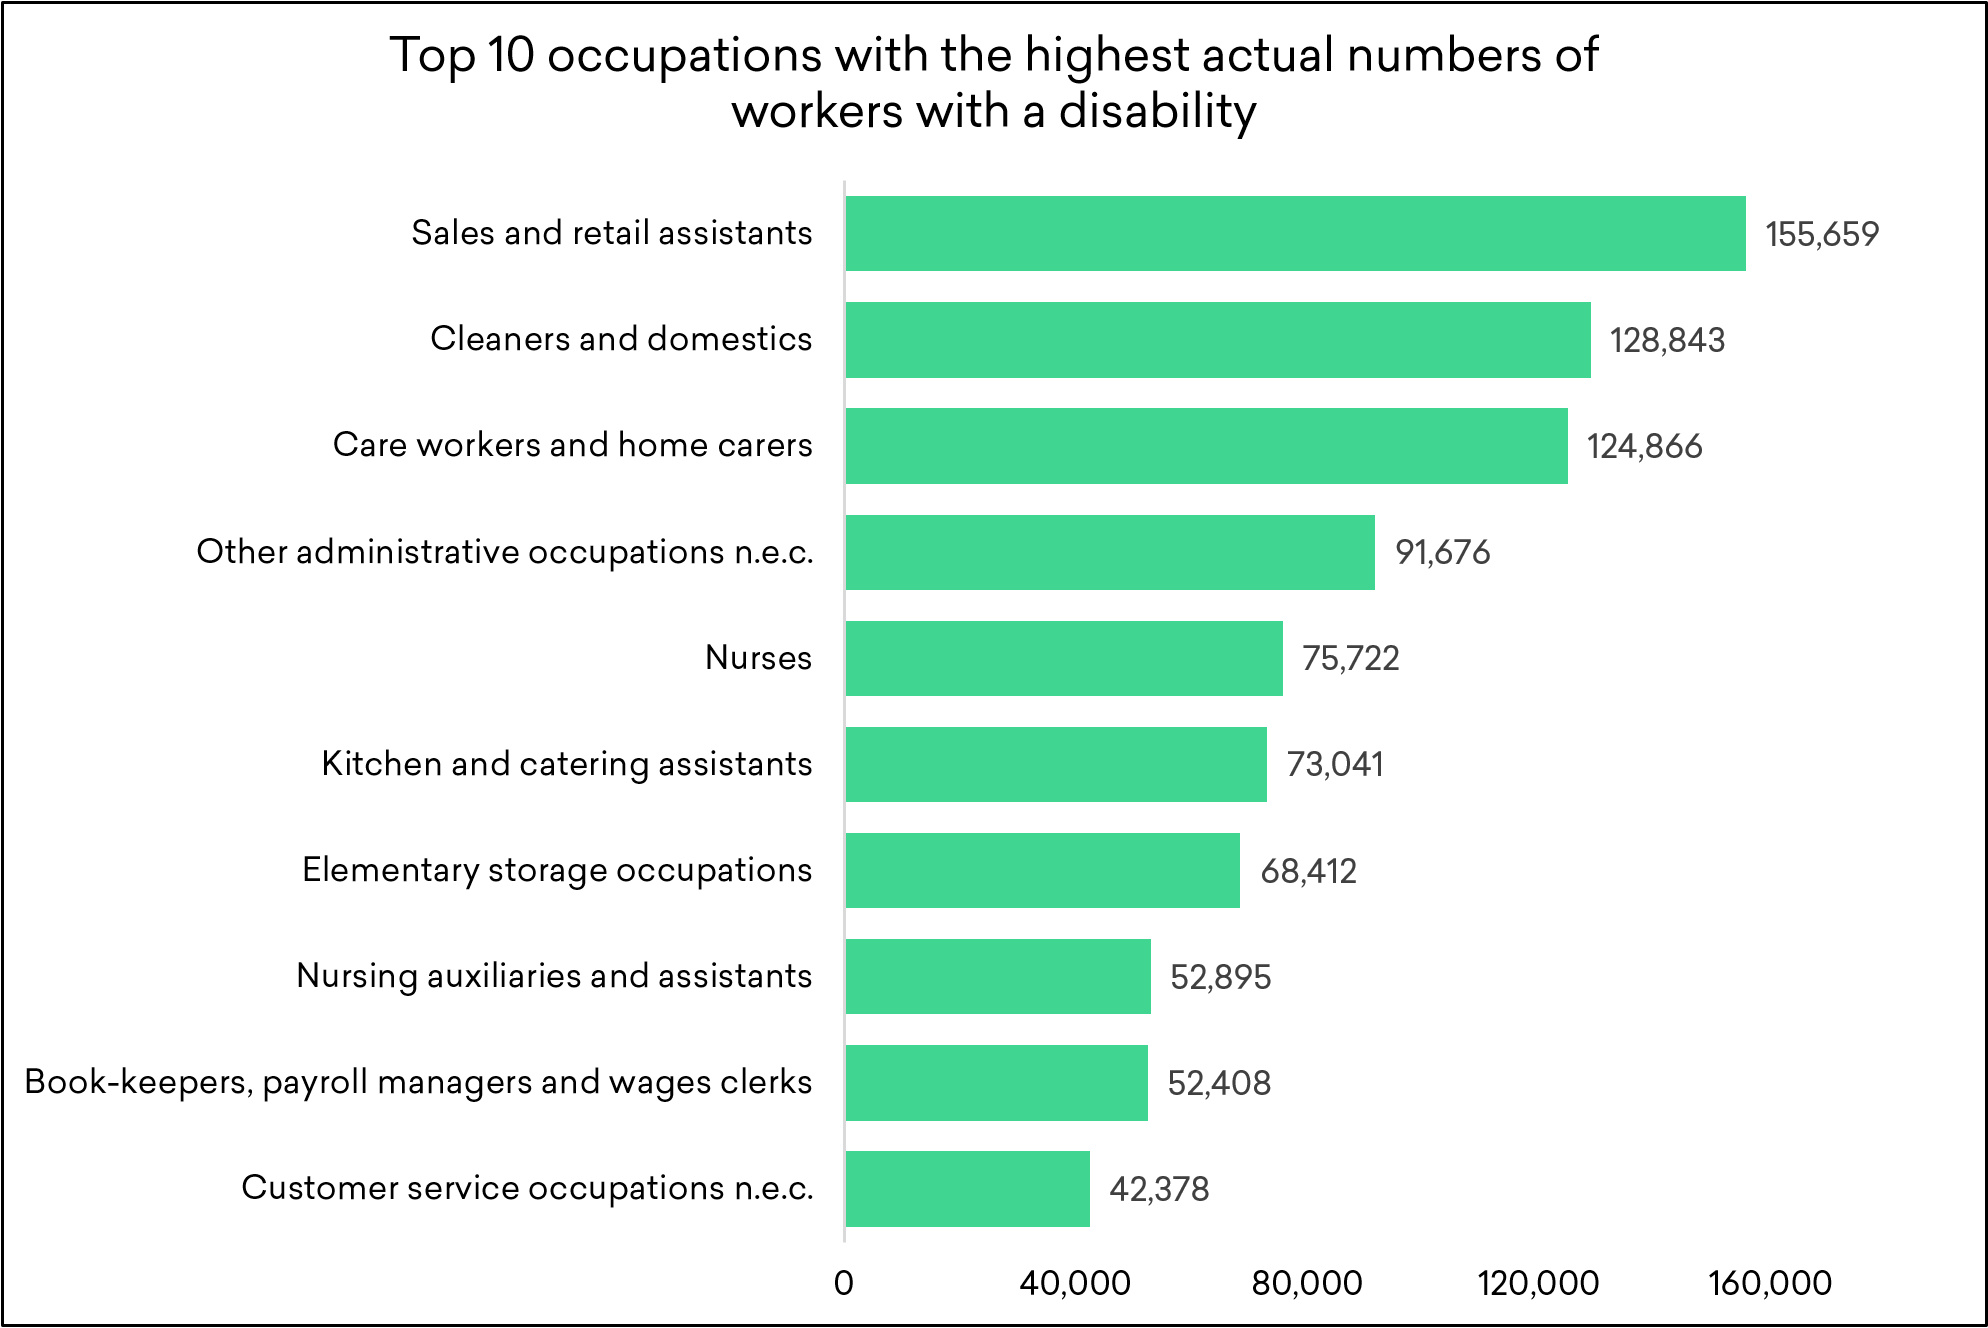 Top 10 occupations with the highest actual number of workers with a disability